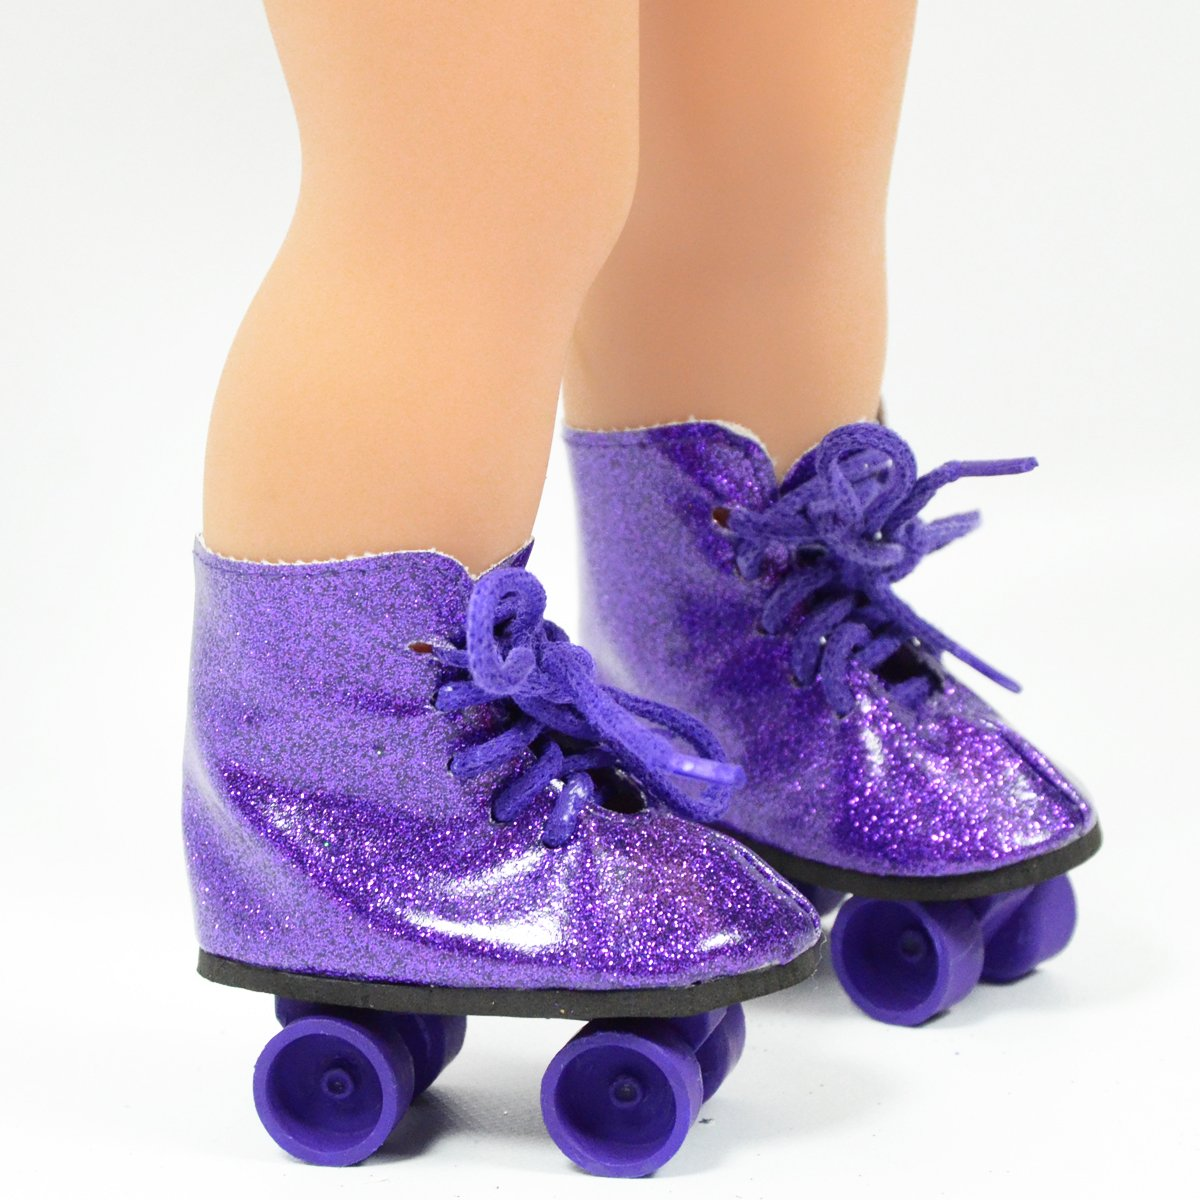 Roller Skates for American Girl Dolls The Cutest Doll Shoes and Doll Accessories The New York Doll Collection Purple Glitter Roller Skates for 18 Inch Dolls